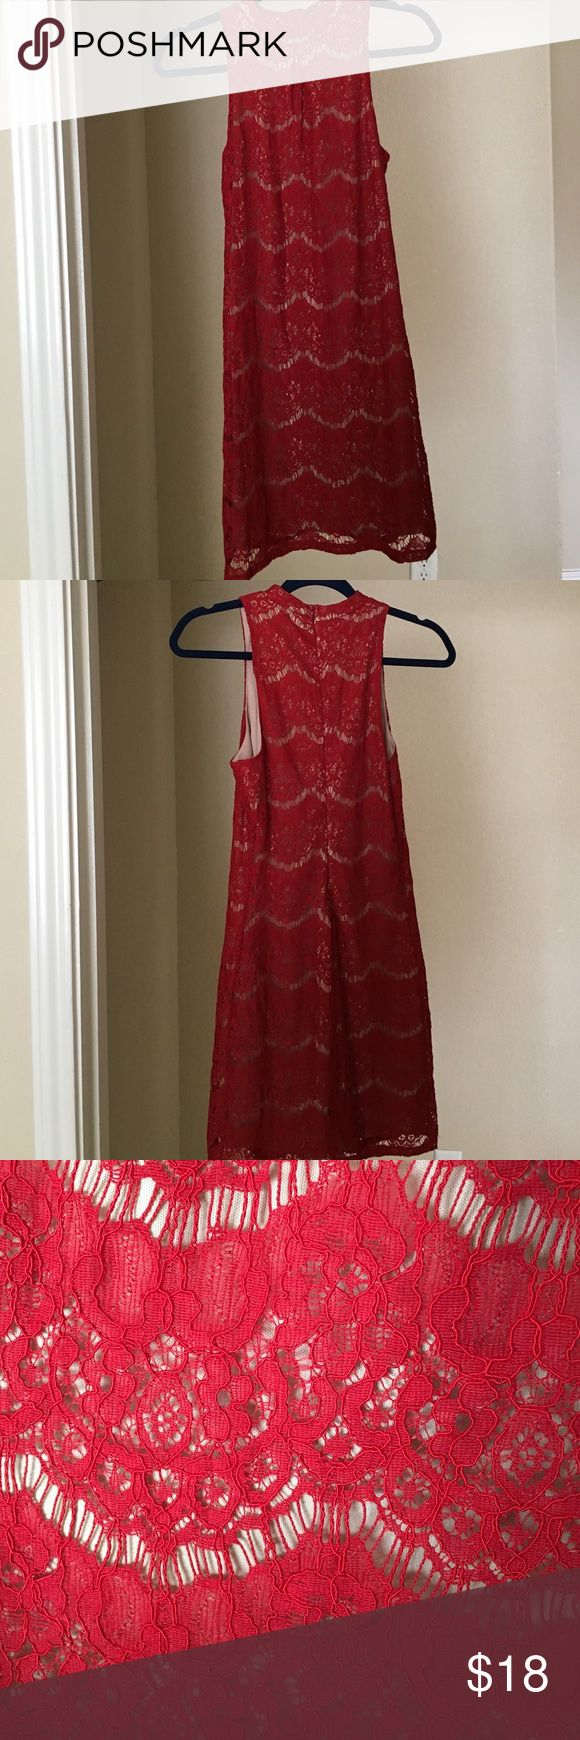 Nordstrom Red Lace Halter Dress Beautiful halter neck with quality lace overlaying a nude slip. I wore this dress just once with black tights to a winter wedding and got tons of compliments! From Nordstrom' love, fire Dresses